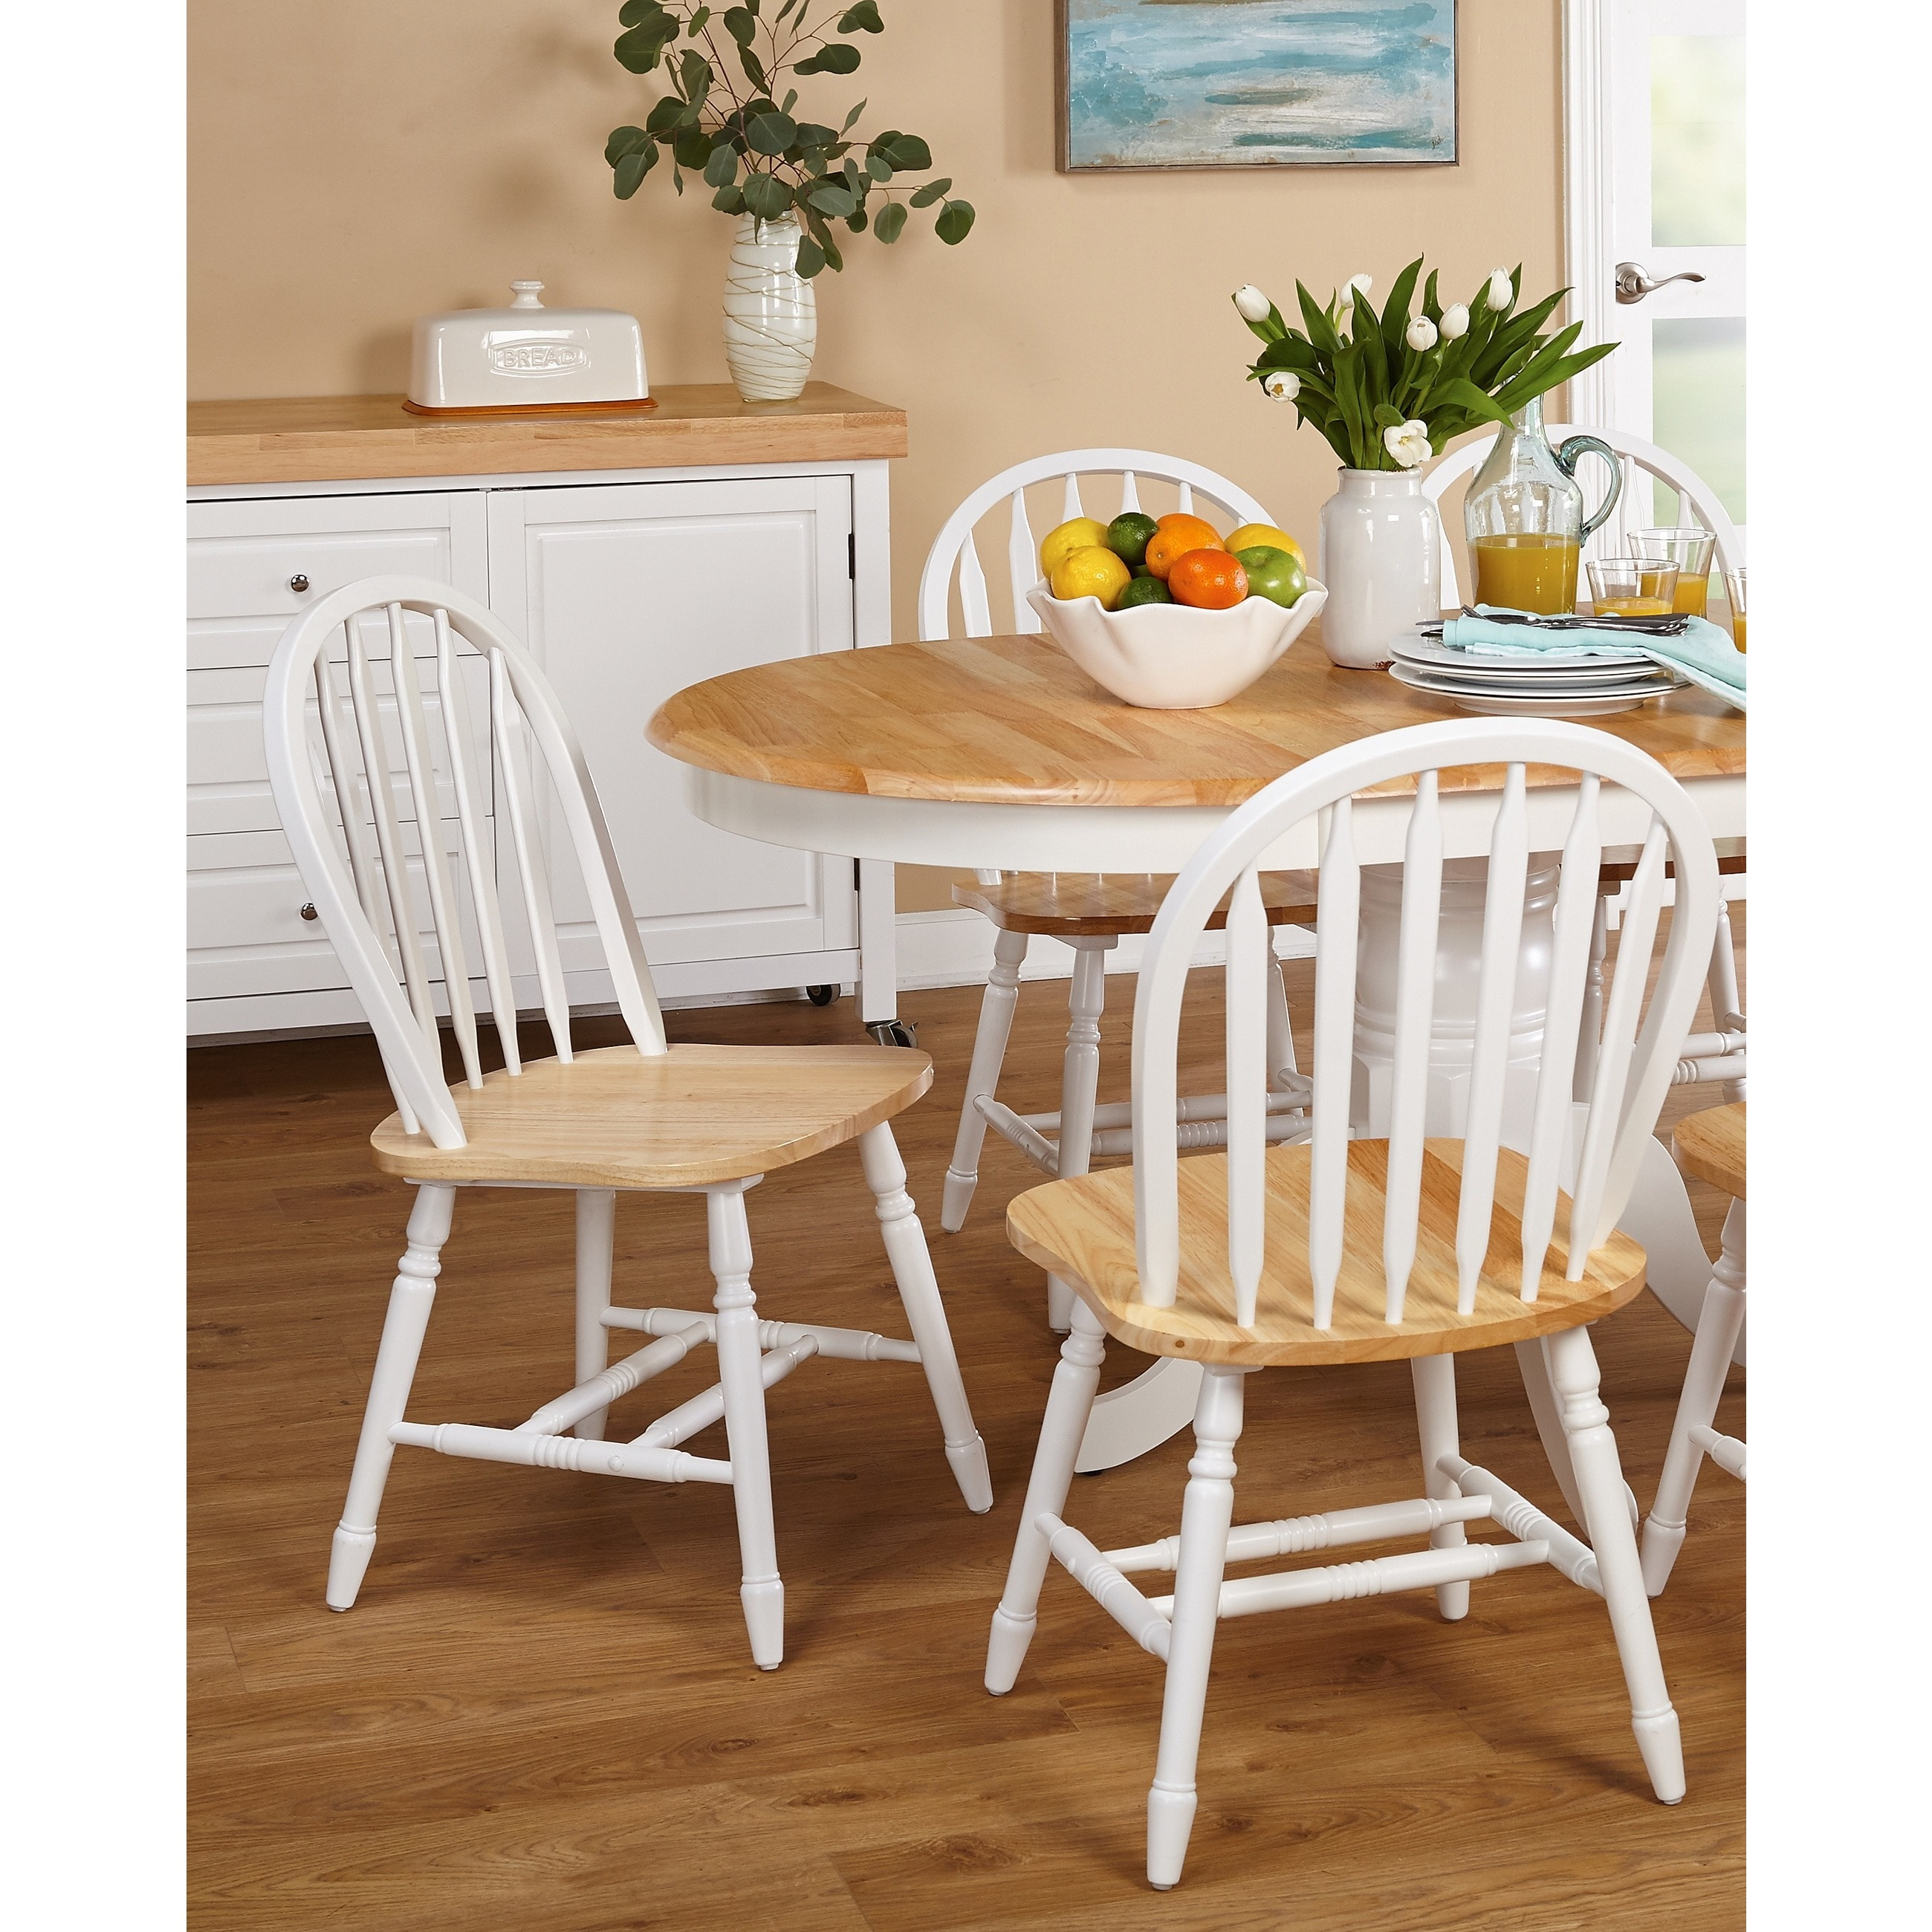 Shop simple living carolina windsor dining chairs set of 2 on sale free shipping today overstock com 16685221